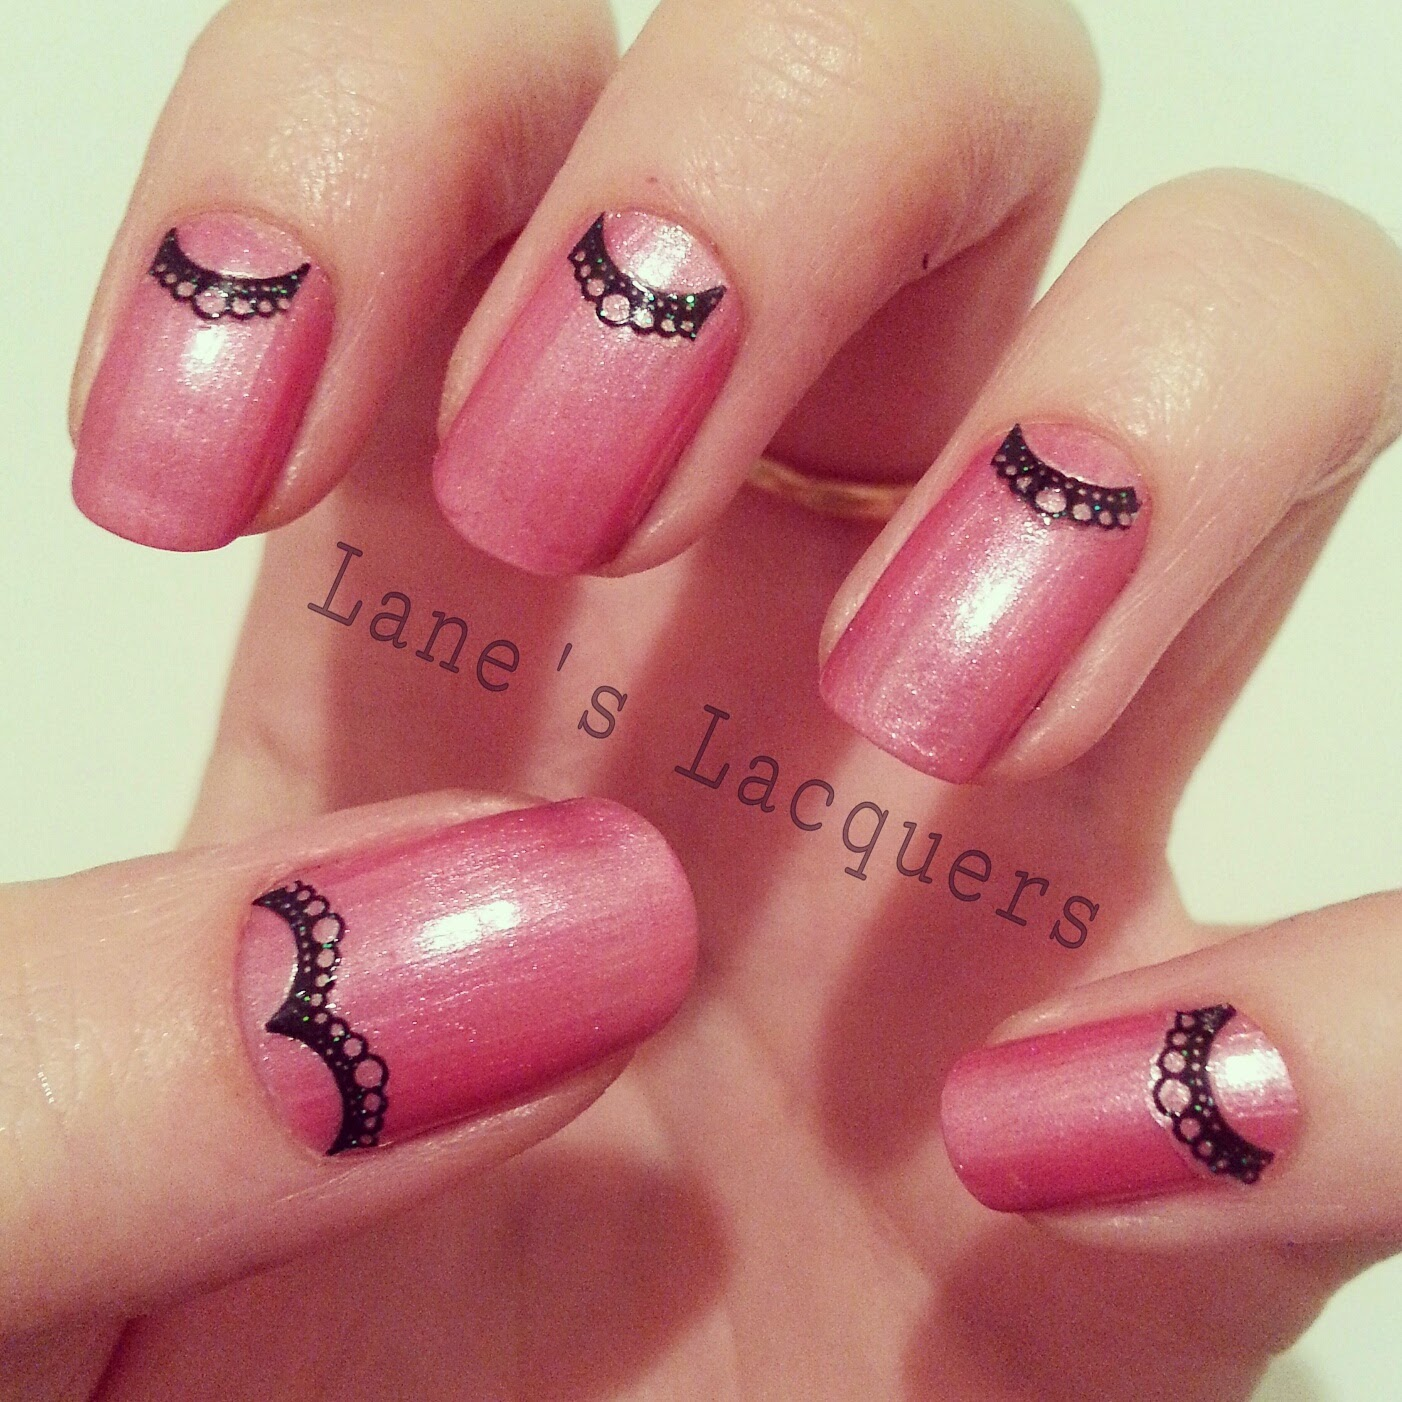 pretty-pink-mani-bps-lace-nail-art-stickers